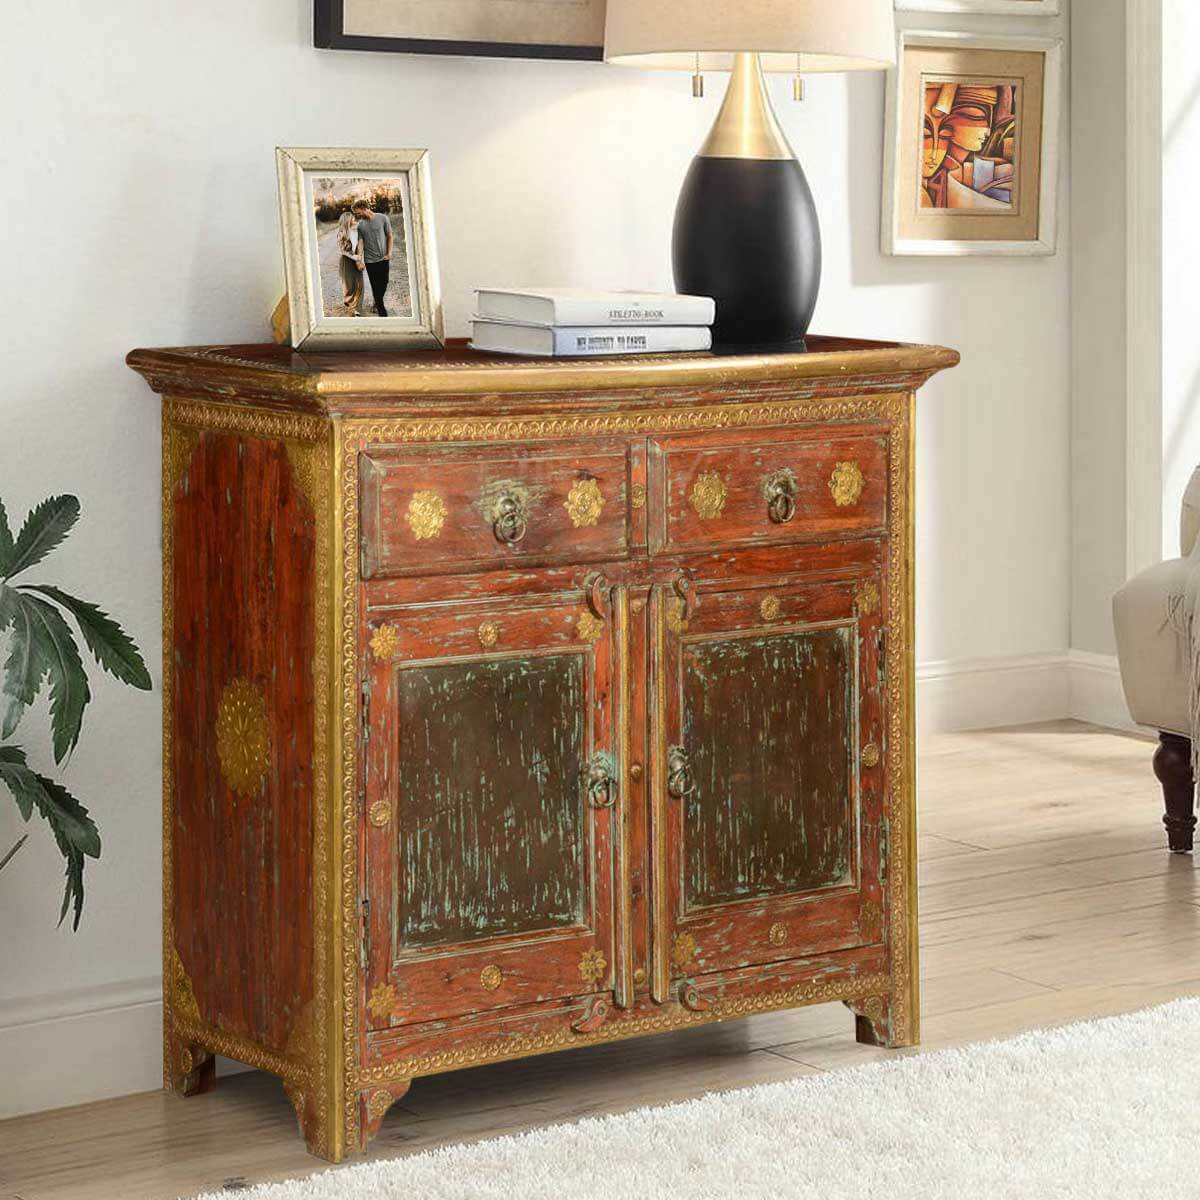 Golden Medallions Rustic Mango Wood Freestanding Buffet Cabinet. Full resolution‎  file, nominally Width 1200 Height 1200 pixels, file with #B28C19.